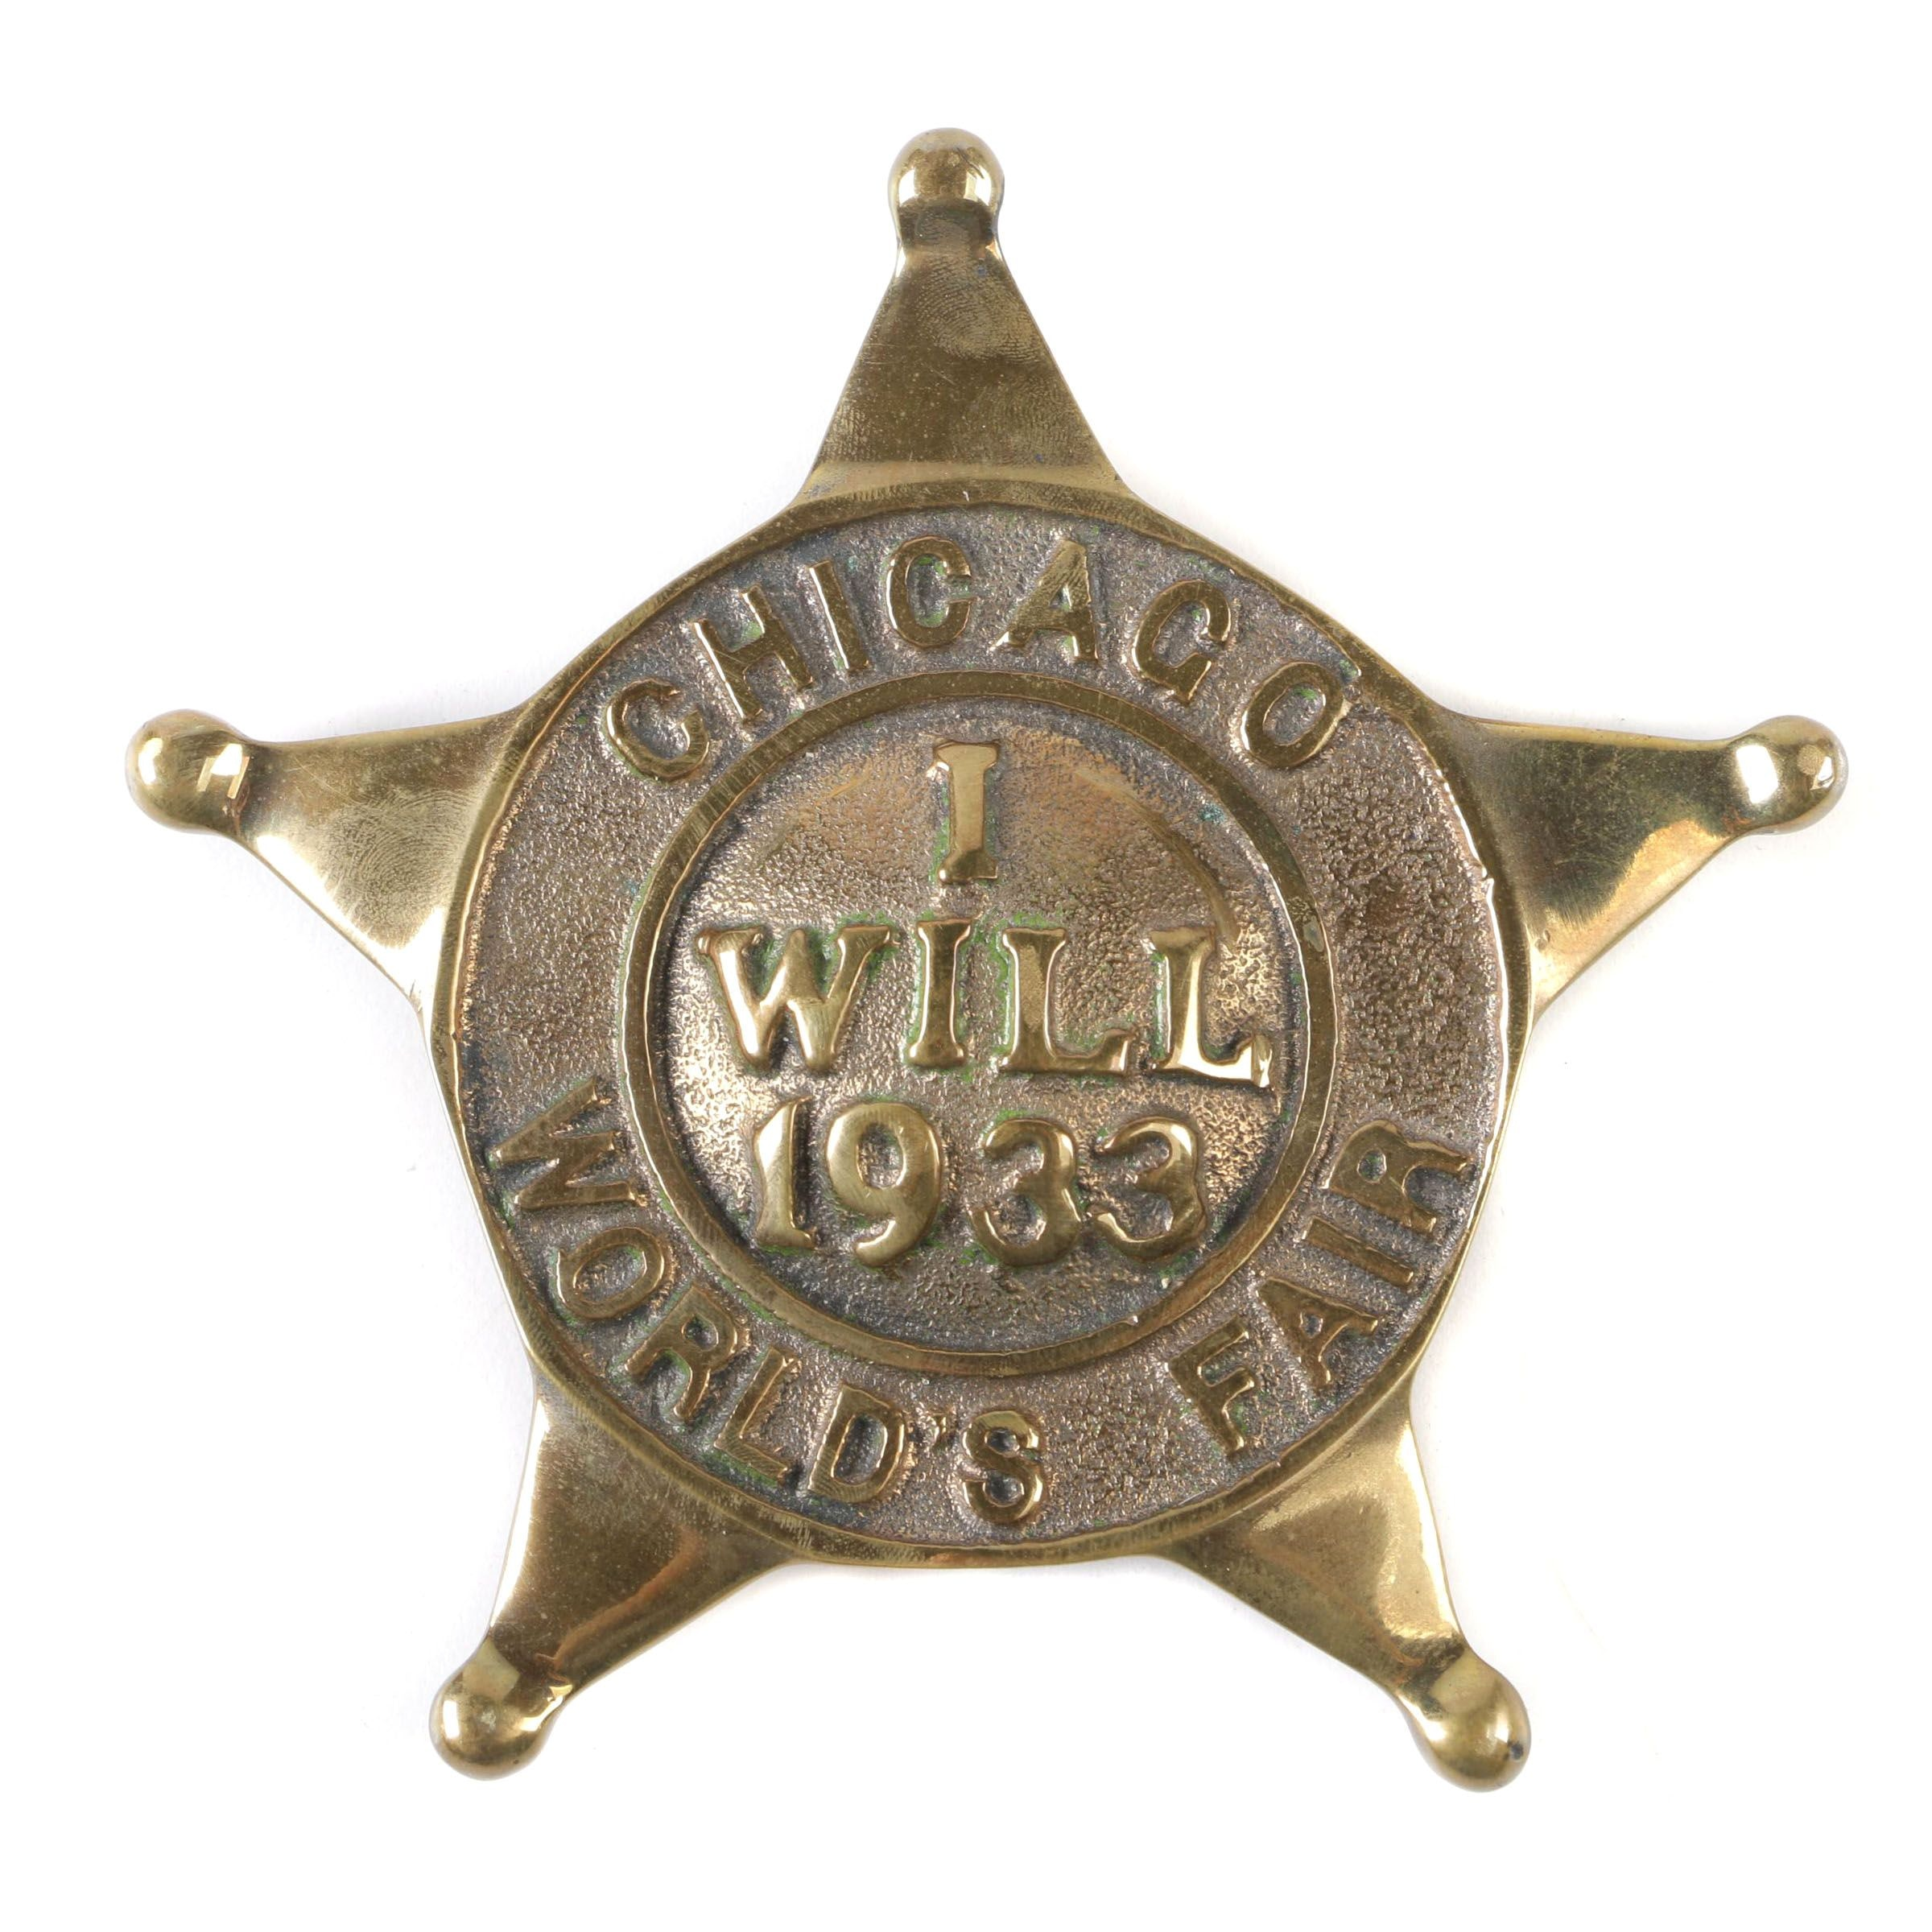 Chicago World's Fair Cast Metal Police Car License Plate Badge, 1933